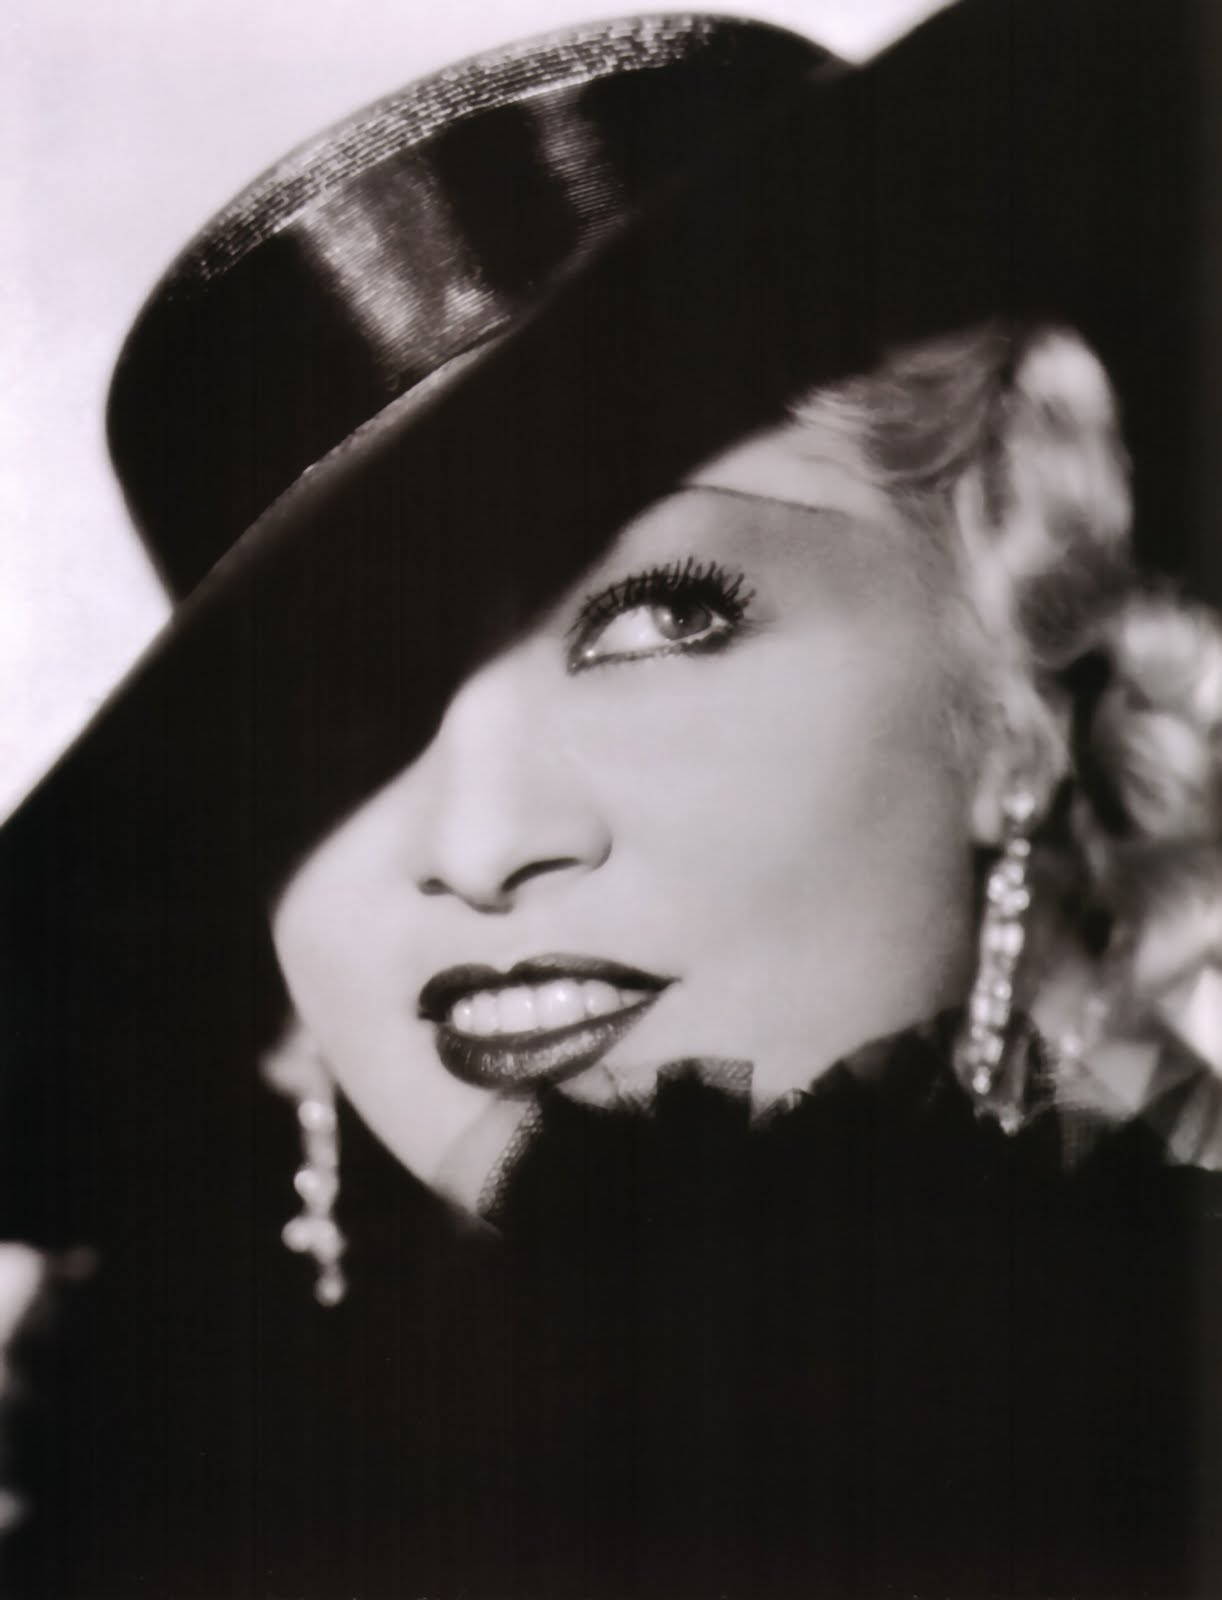 a photo of Mae West, famous hollywood actress